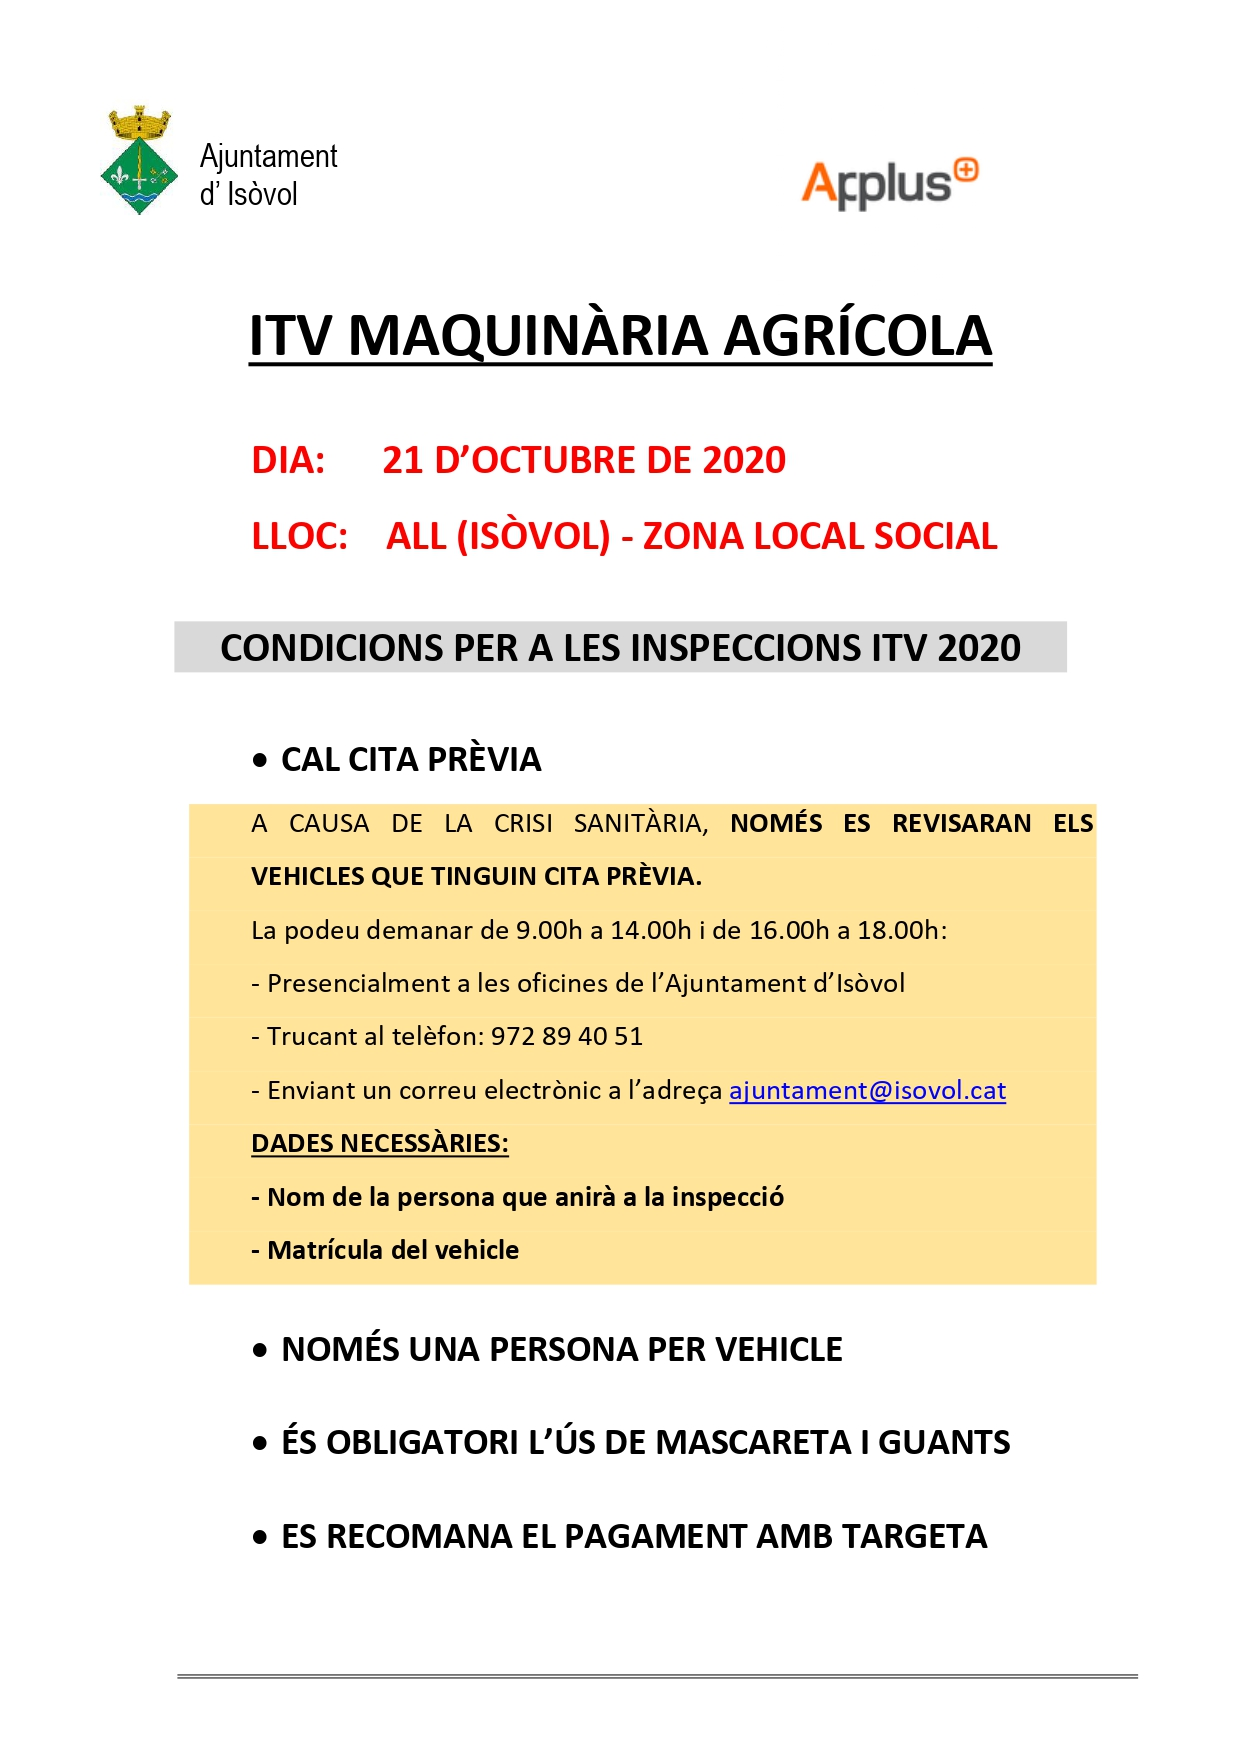 CARTELL DIA 21-10-2020(D)_page-0001